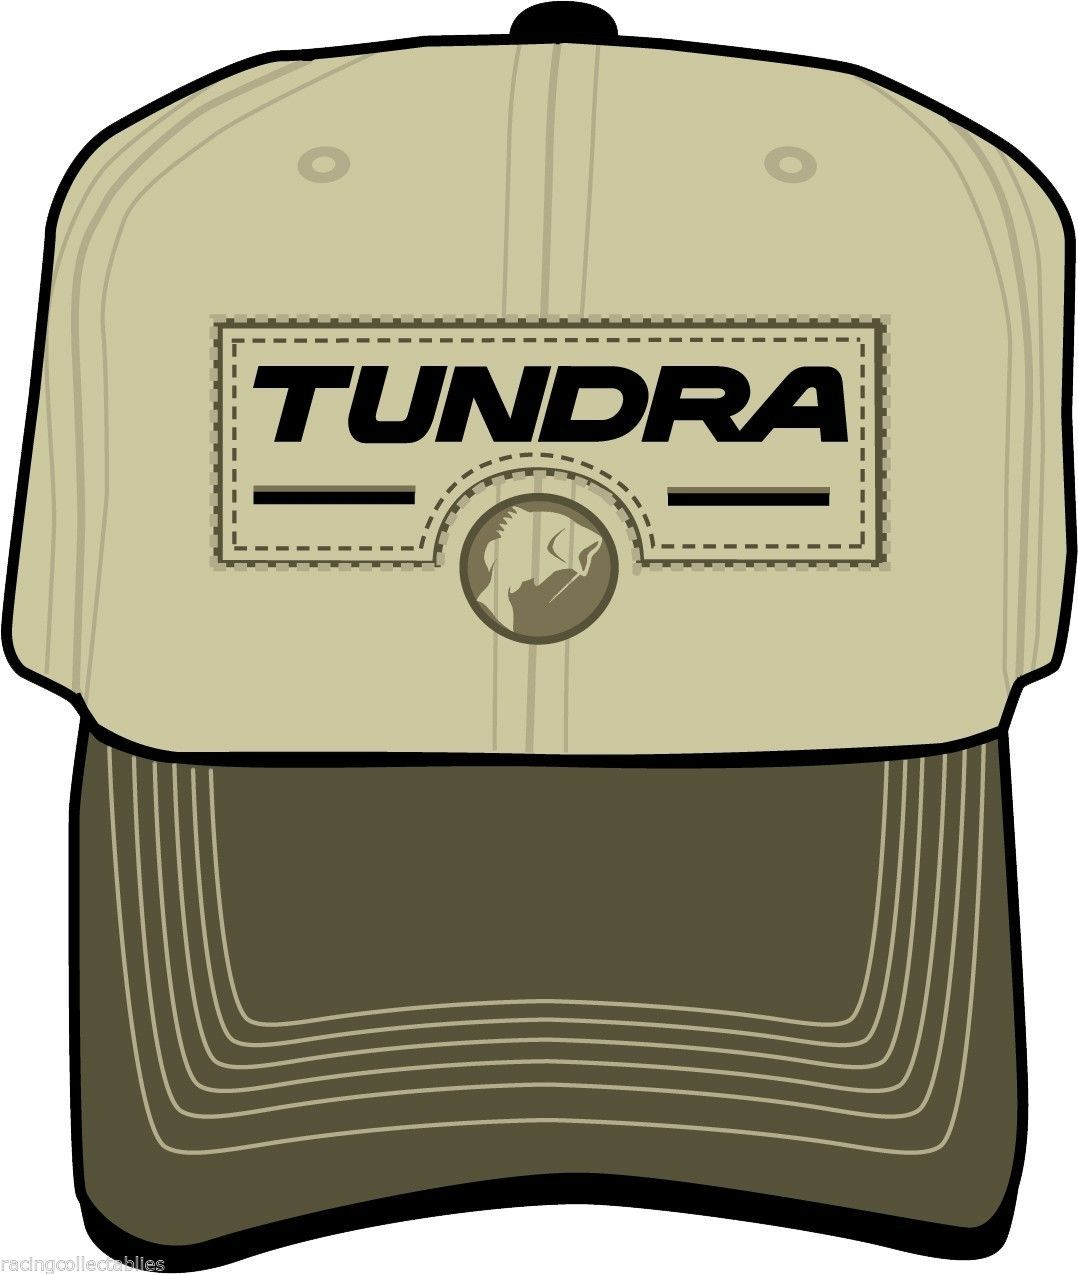 Toyota TUNDRA on a Tan Green new ball cap w tags  Toyota TUNDRA logo on a new  tan and green ball cap with tags. One of a kind and on a few left...but it  ... 4afe600aad17